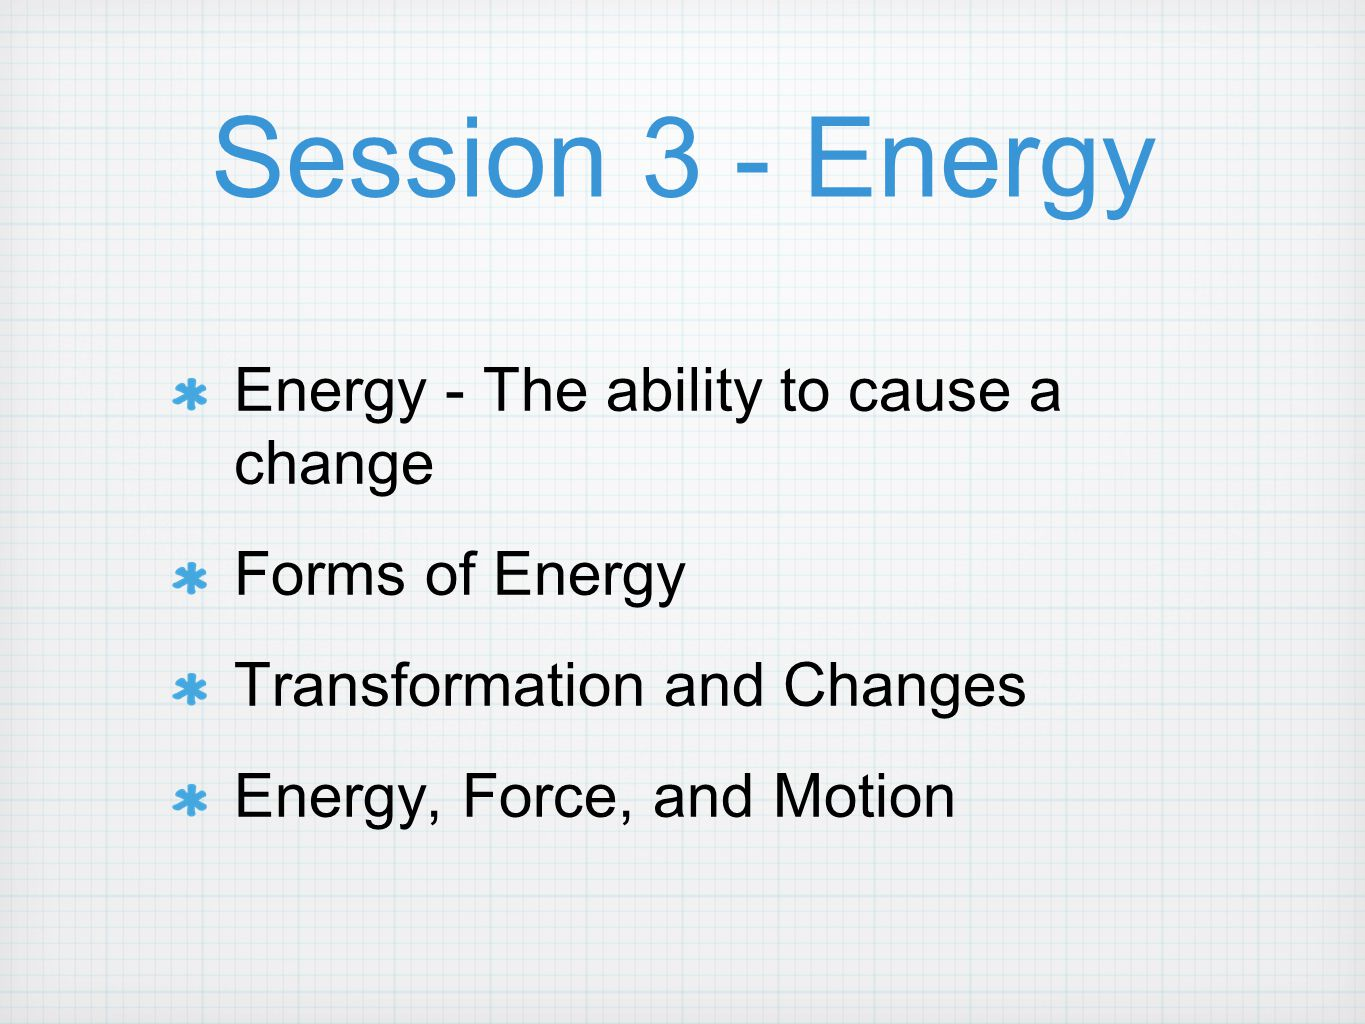 Session 3 - Energy Energy - The ability to cause a change Forms of Energy Transformation and Changes Energy, Force, and Motion